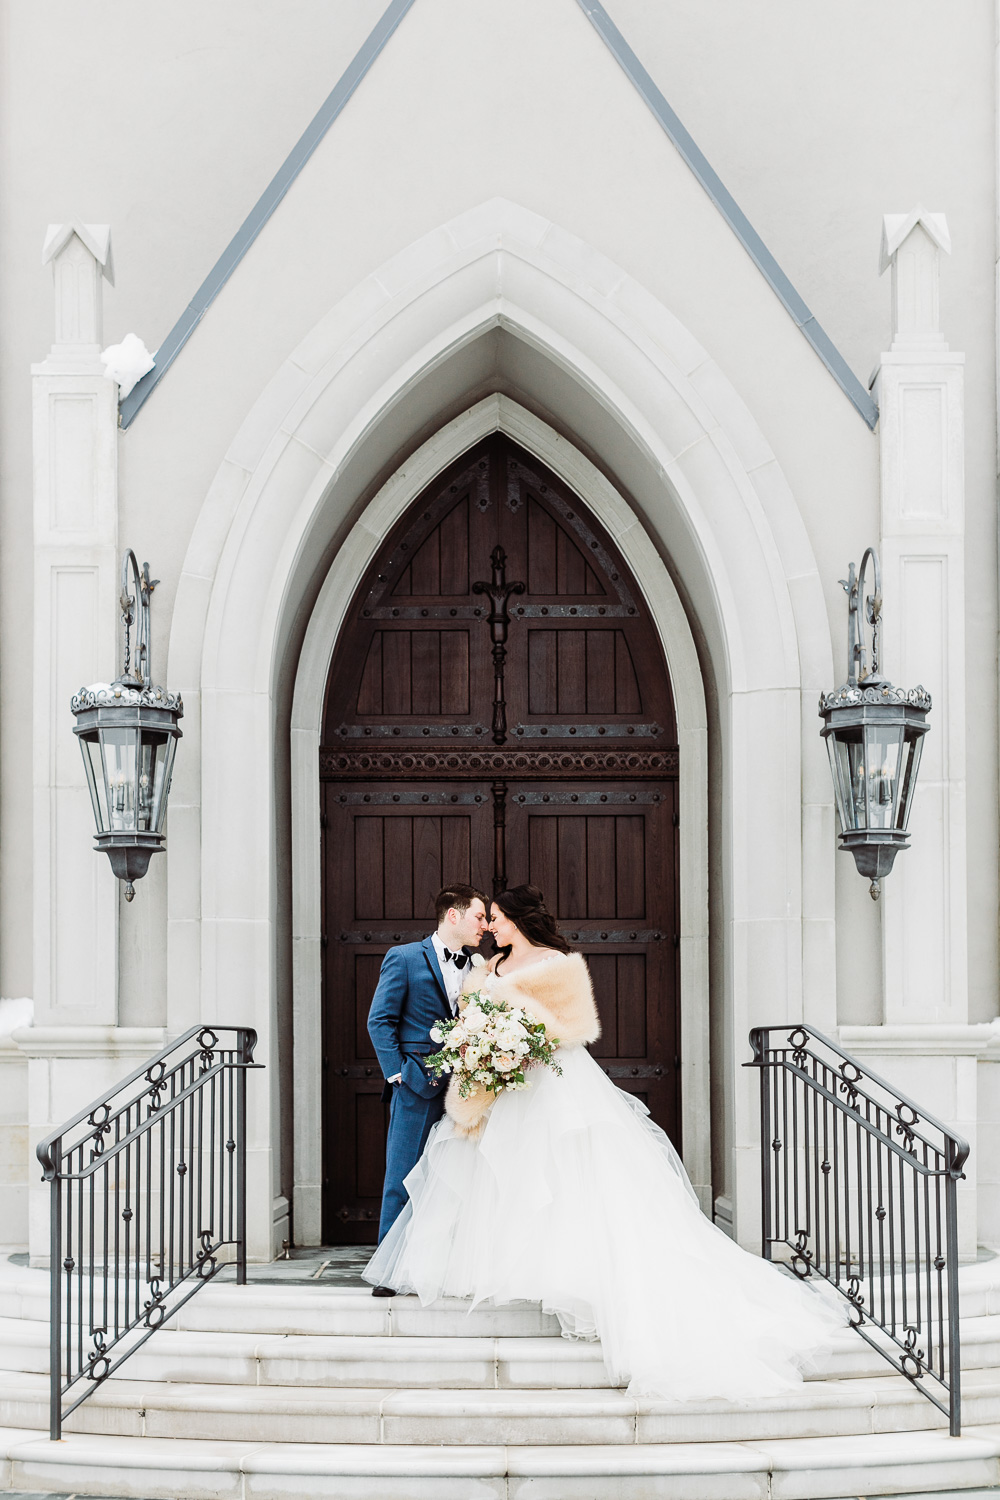 Winter Park Chateau Wedding in New Jersey.  Blushed Design: Wedding Invitations and Fine Art Portraits